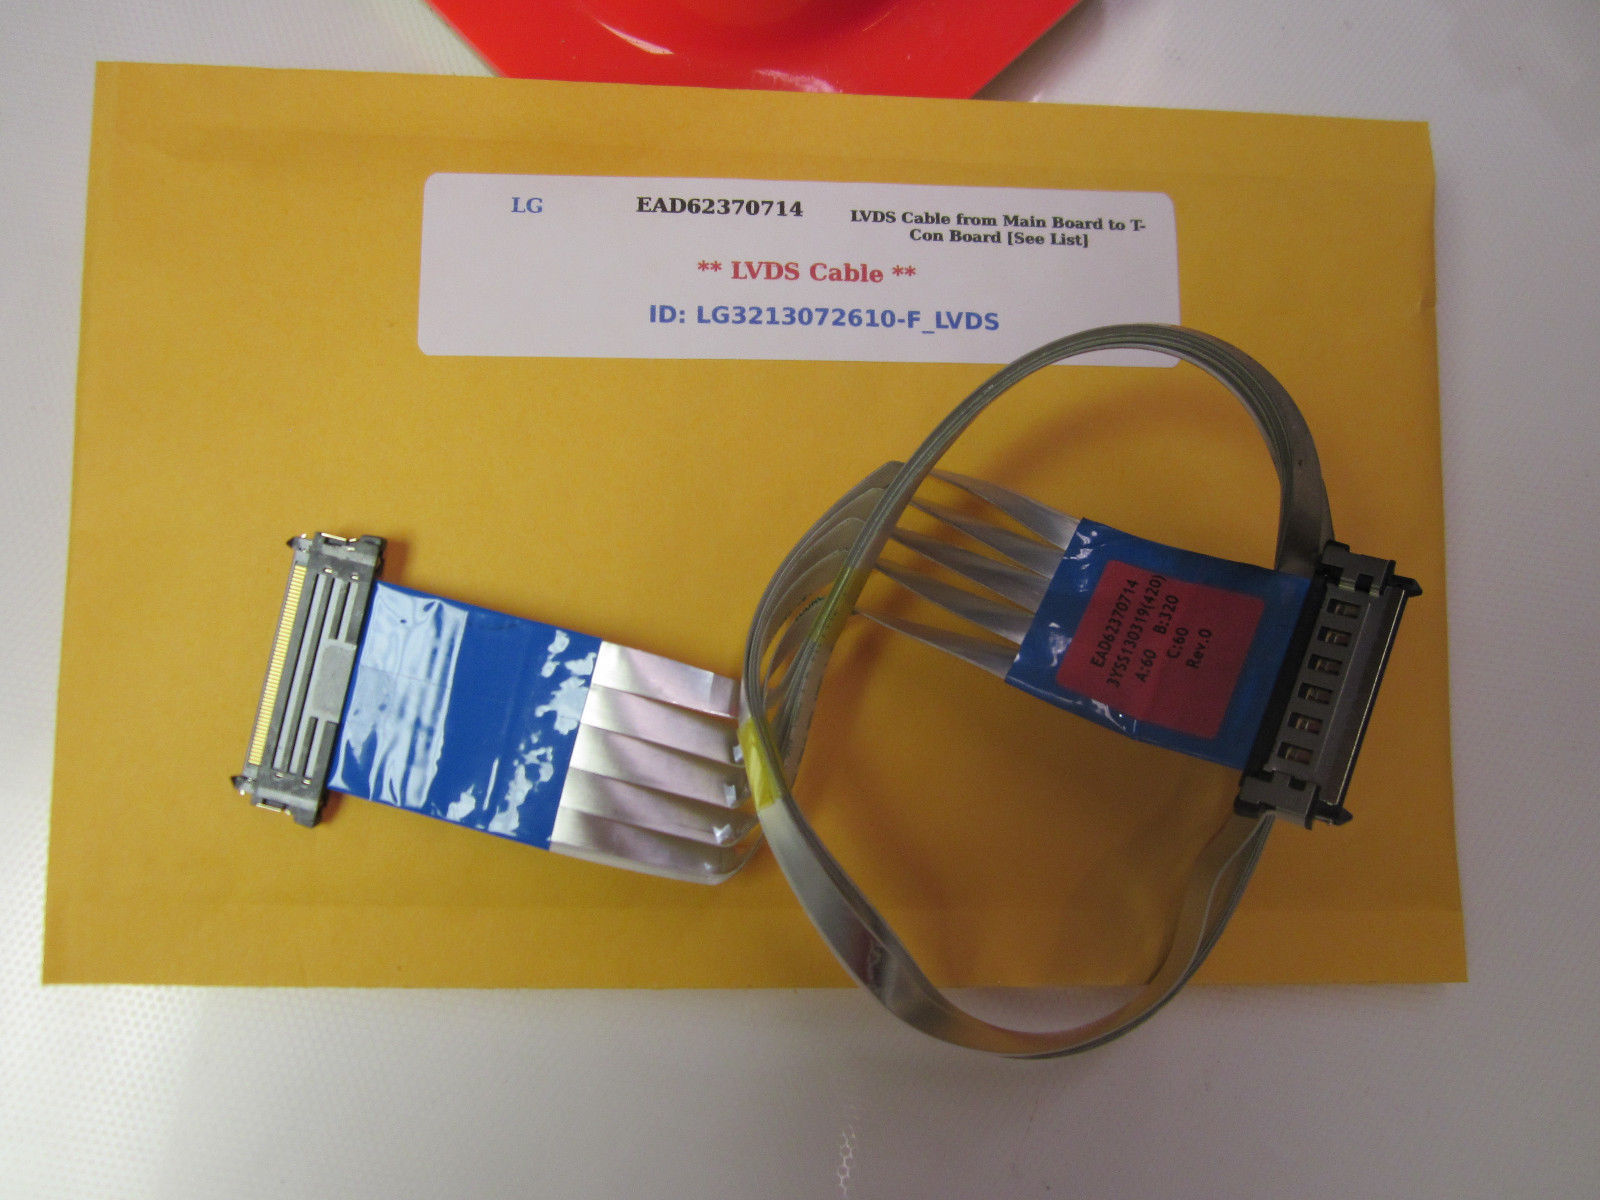 Primary image for LG EAD62370714 LVDS Cable from Main Board to T-Con Board [See List]